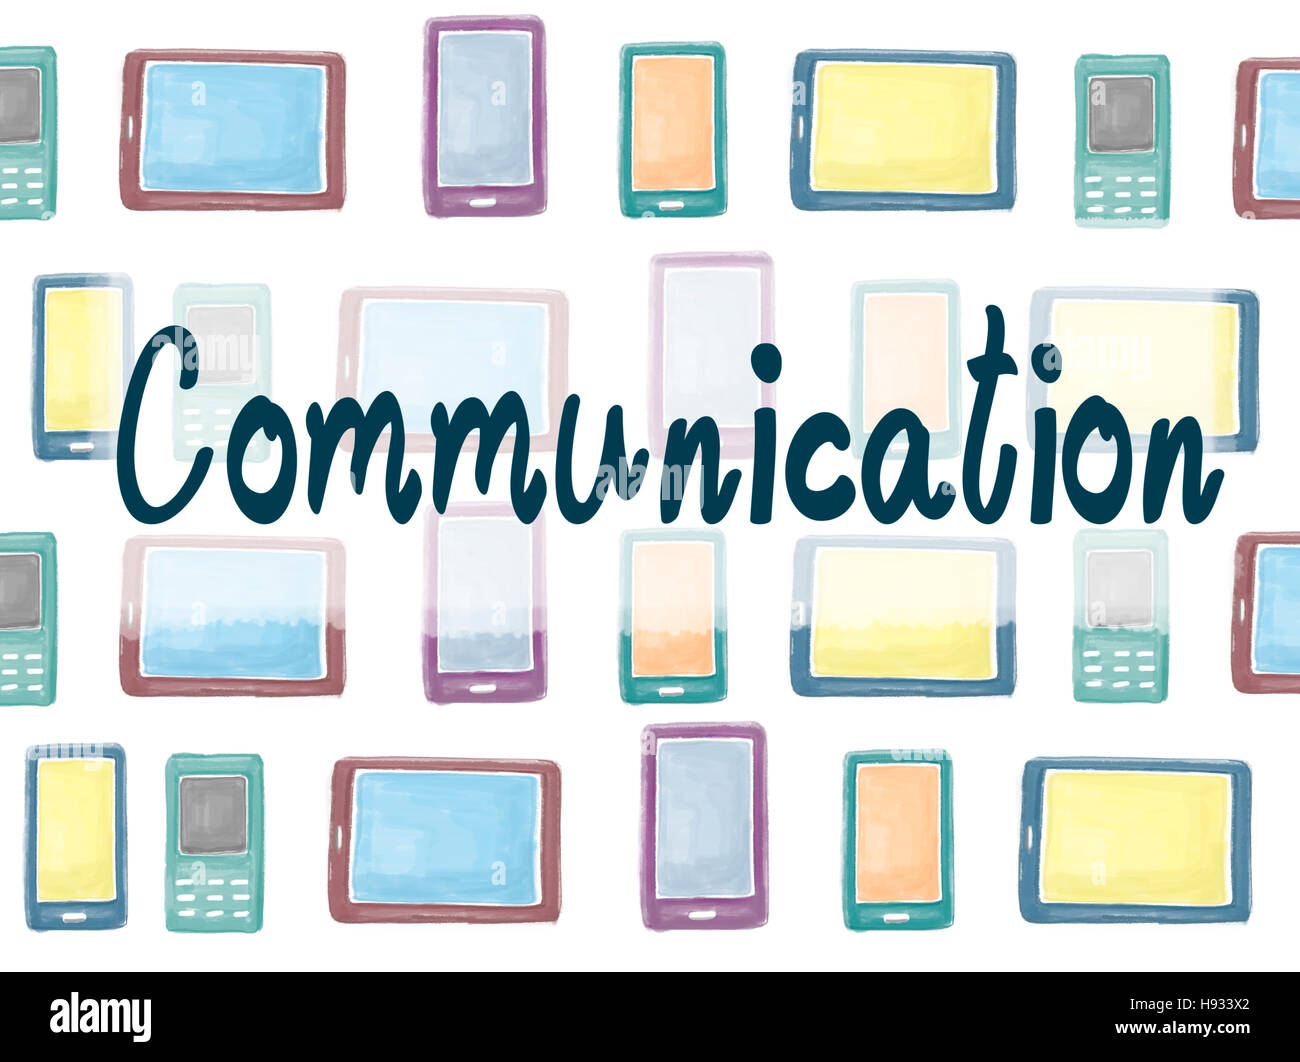 Communication Communicate Connection Interaction Concept - Stock Image